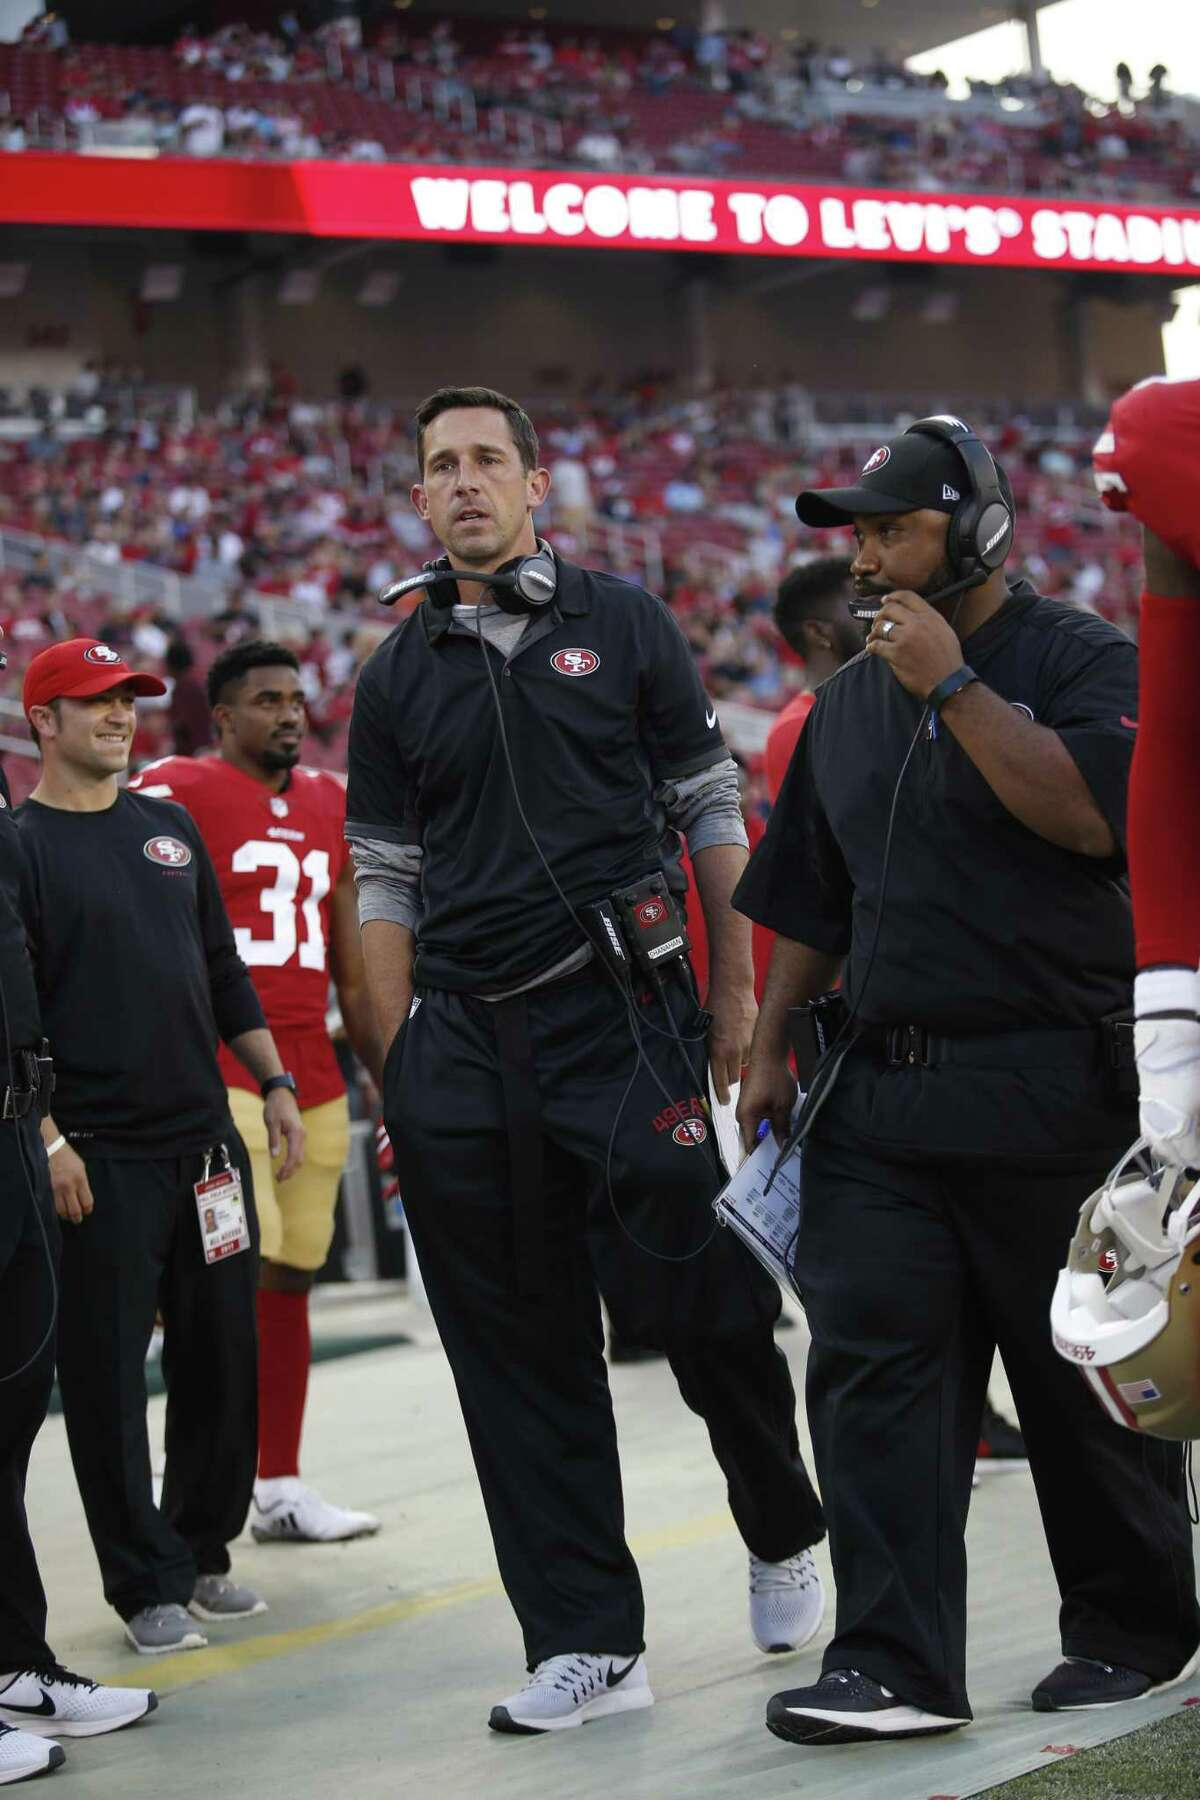 SANTA CLARA, CA - AUGUST 31: Head Coach Kyle Shanahan and Special Teams Coordinator Richard Hightower of the San Francisco 49ers stands on the sideline prior to the game against the Los Angeles Chargers at Levi's Stadium on August 31, 2017 in Santa Clara, California. The 49ers defeated the Chargers 23-13. (Photo by Michael Zagaris/San Francisco 49ers/Getty Images)